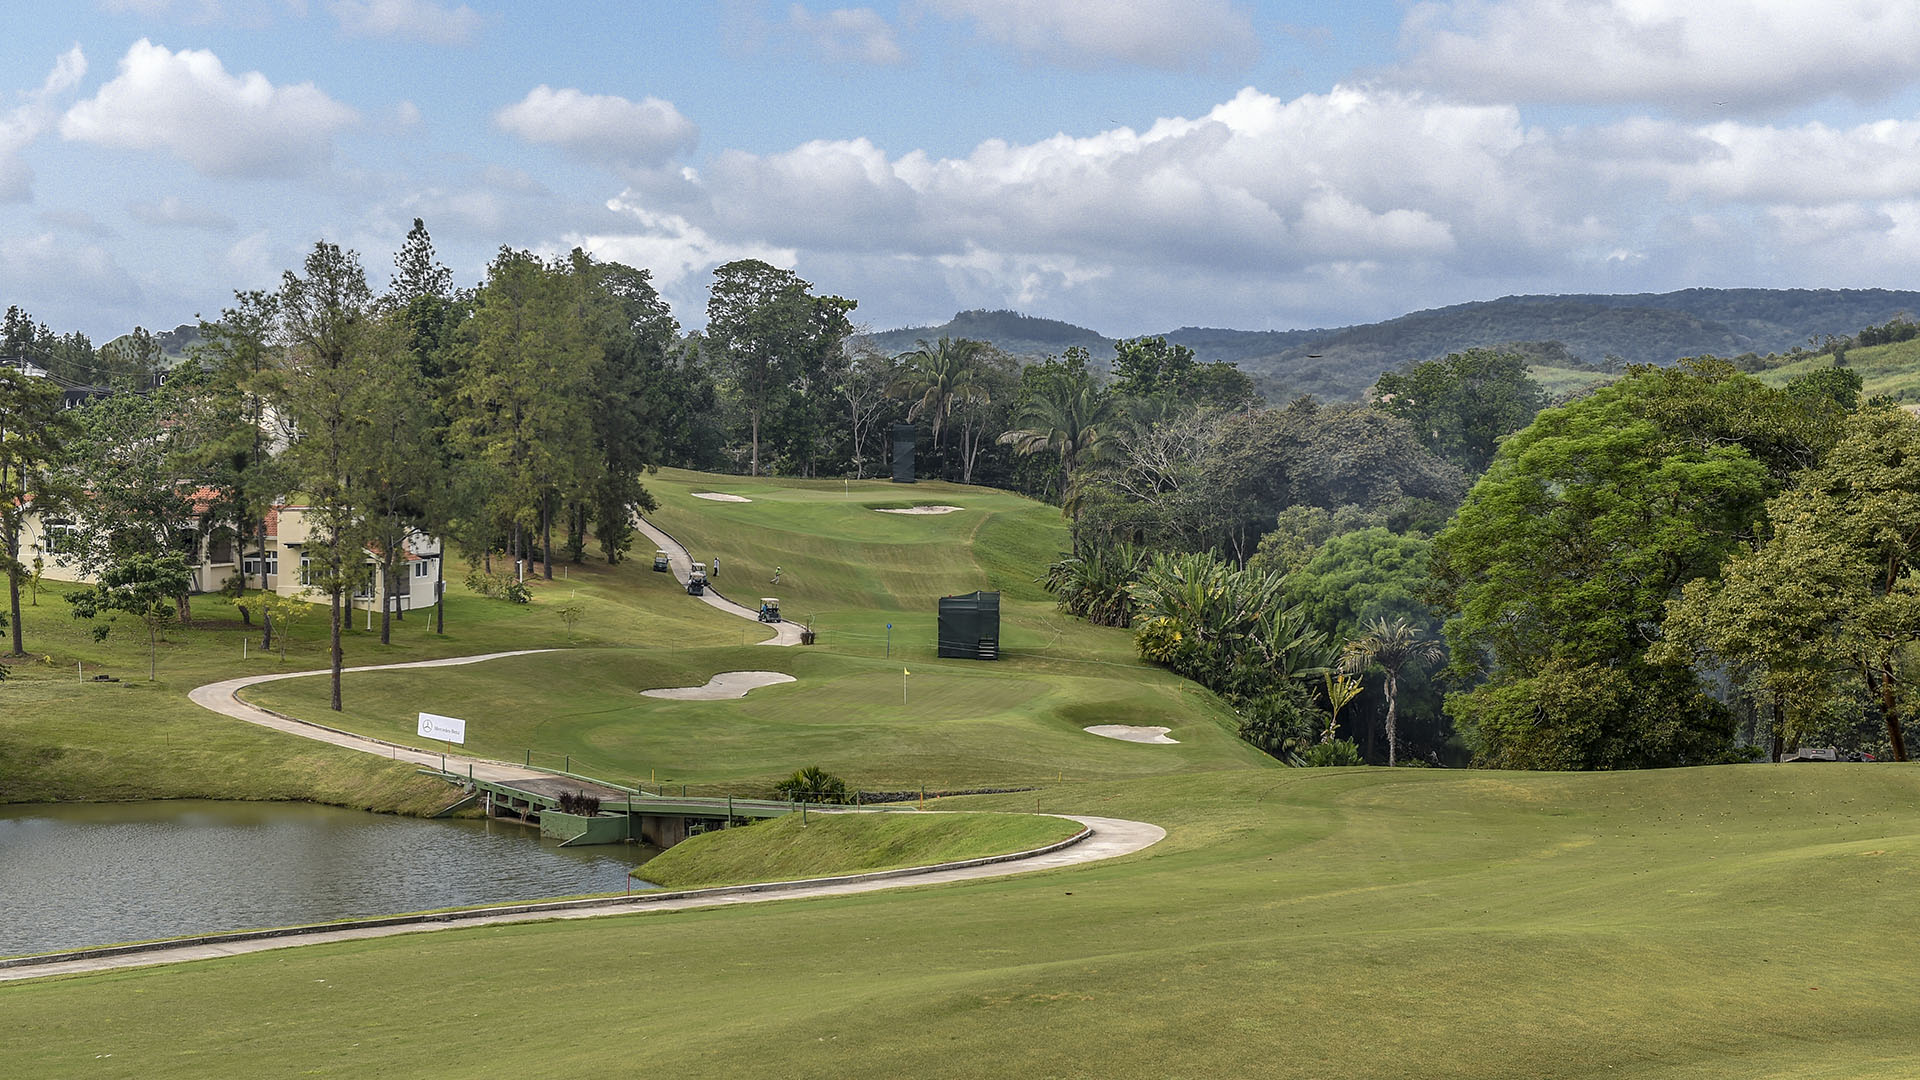 Panama City, Panama: General view of the 7th hole pictured at the 2017 Latin America Amateur Championship at the Club de Golf de Panama during Practice Round on January 8th. (Photo by Enrique Berardi/LAAC)